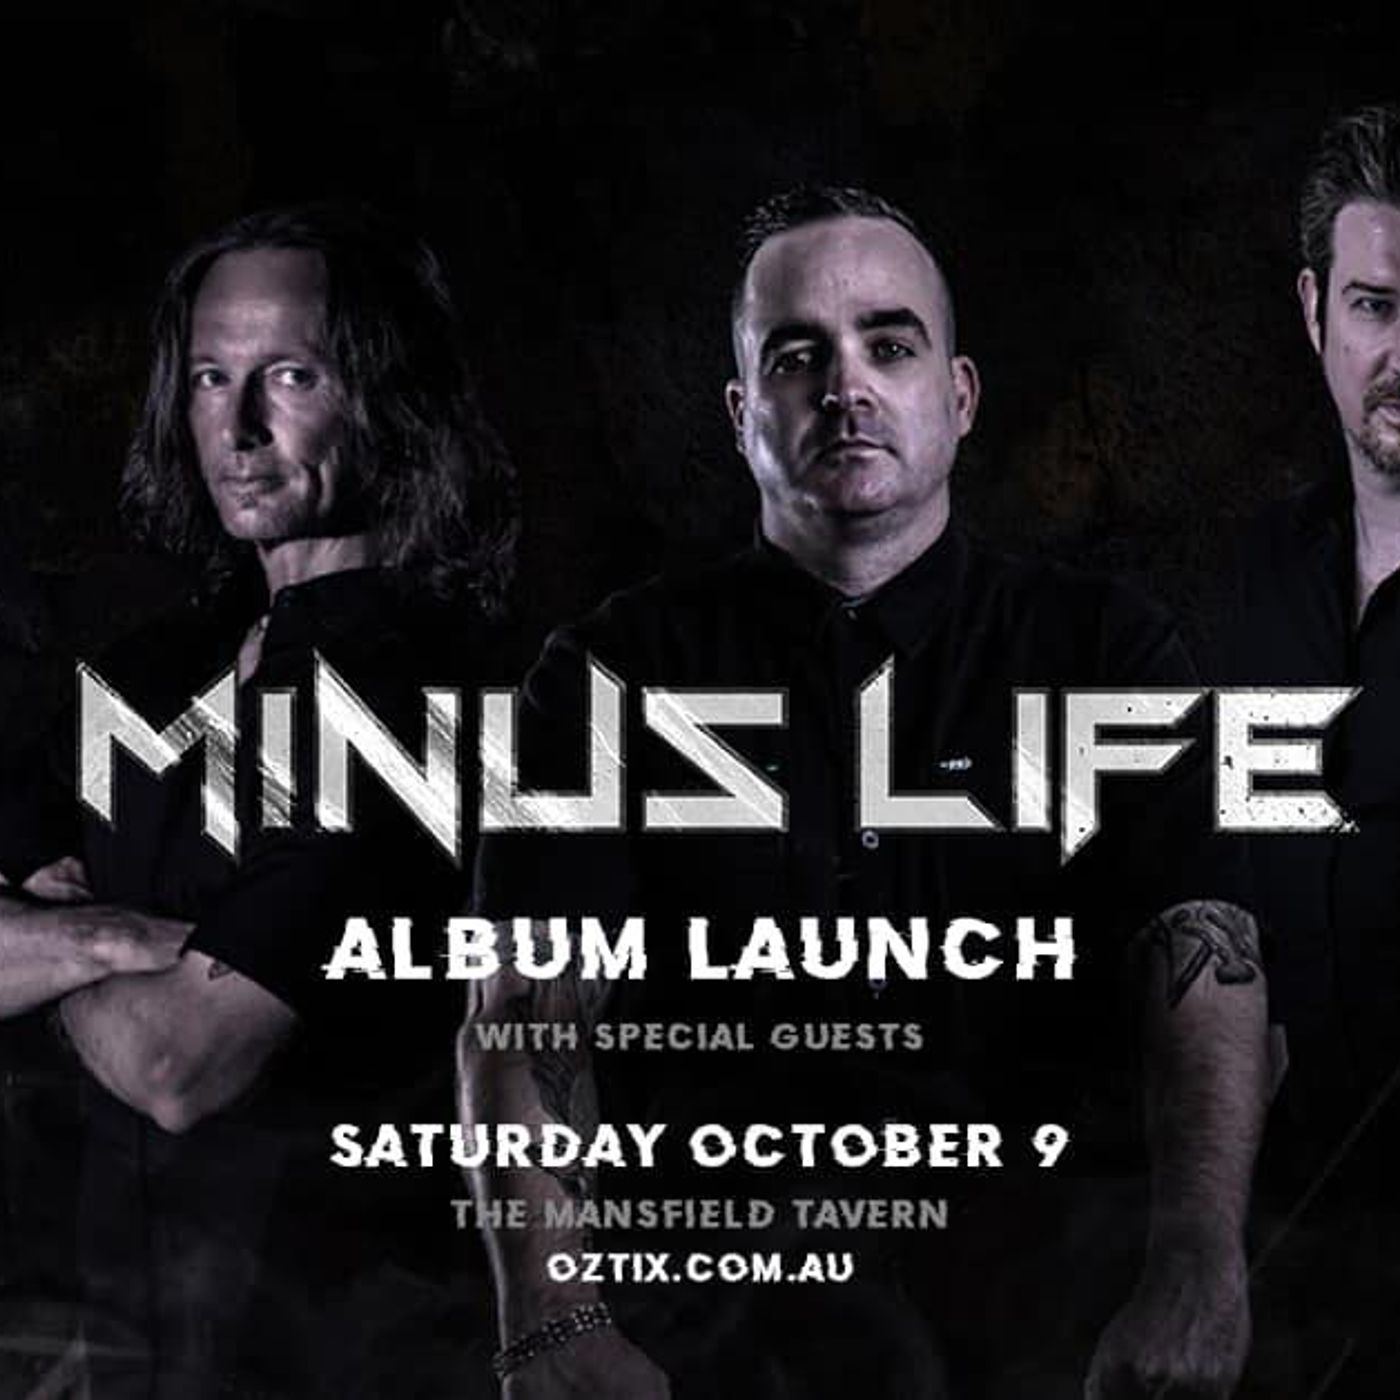 MINUS LIFE Defy Reality With New Release